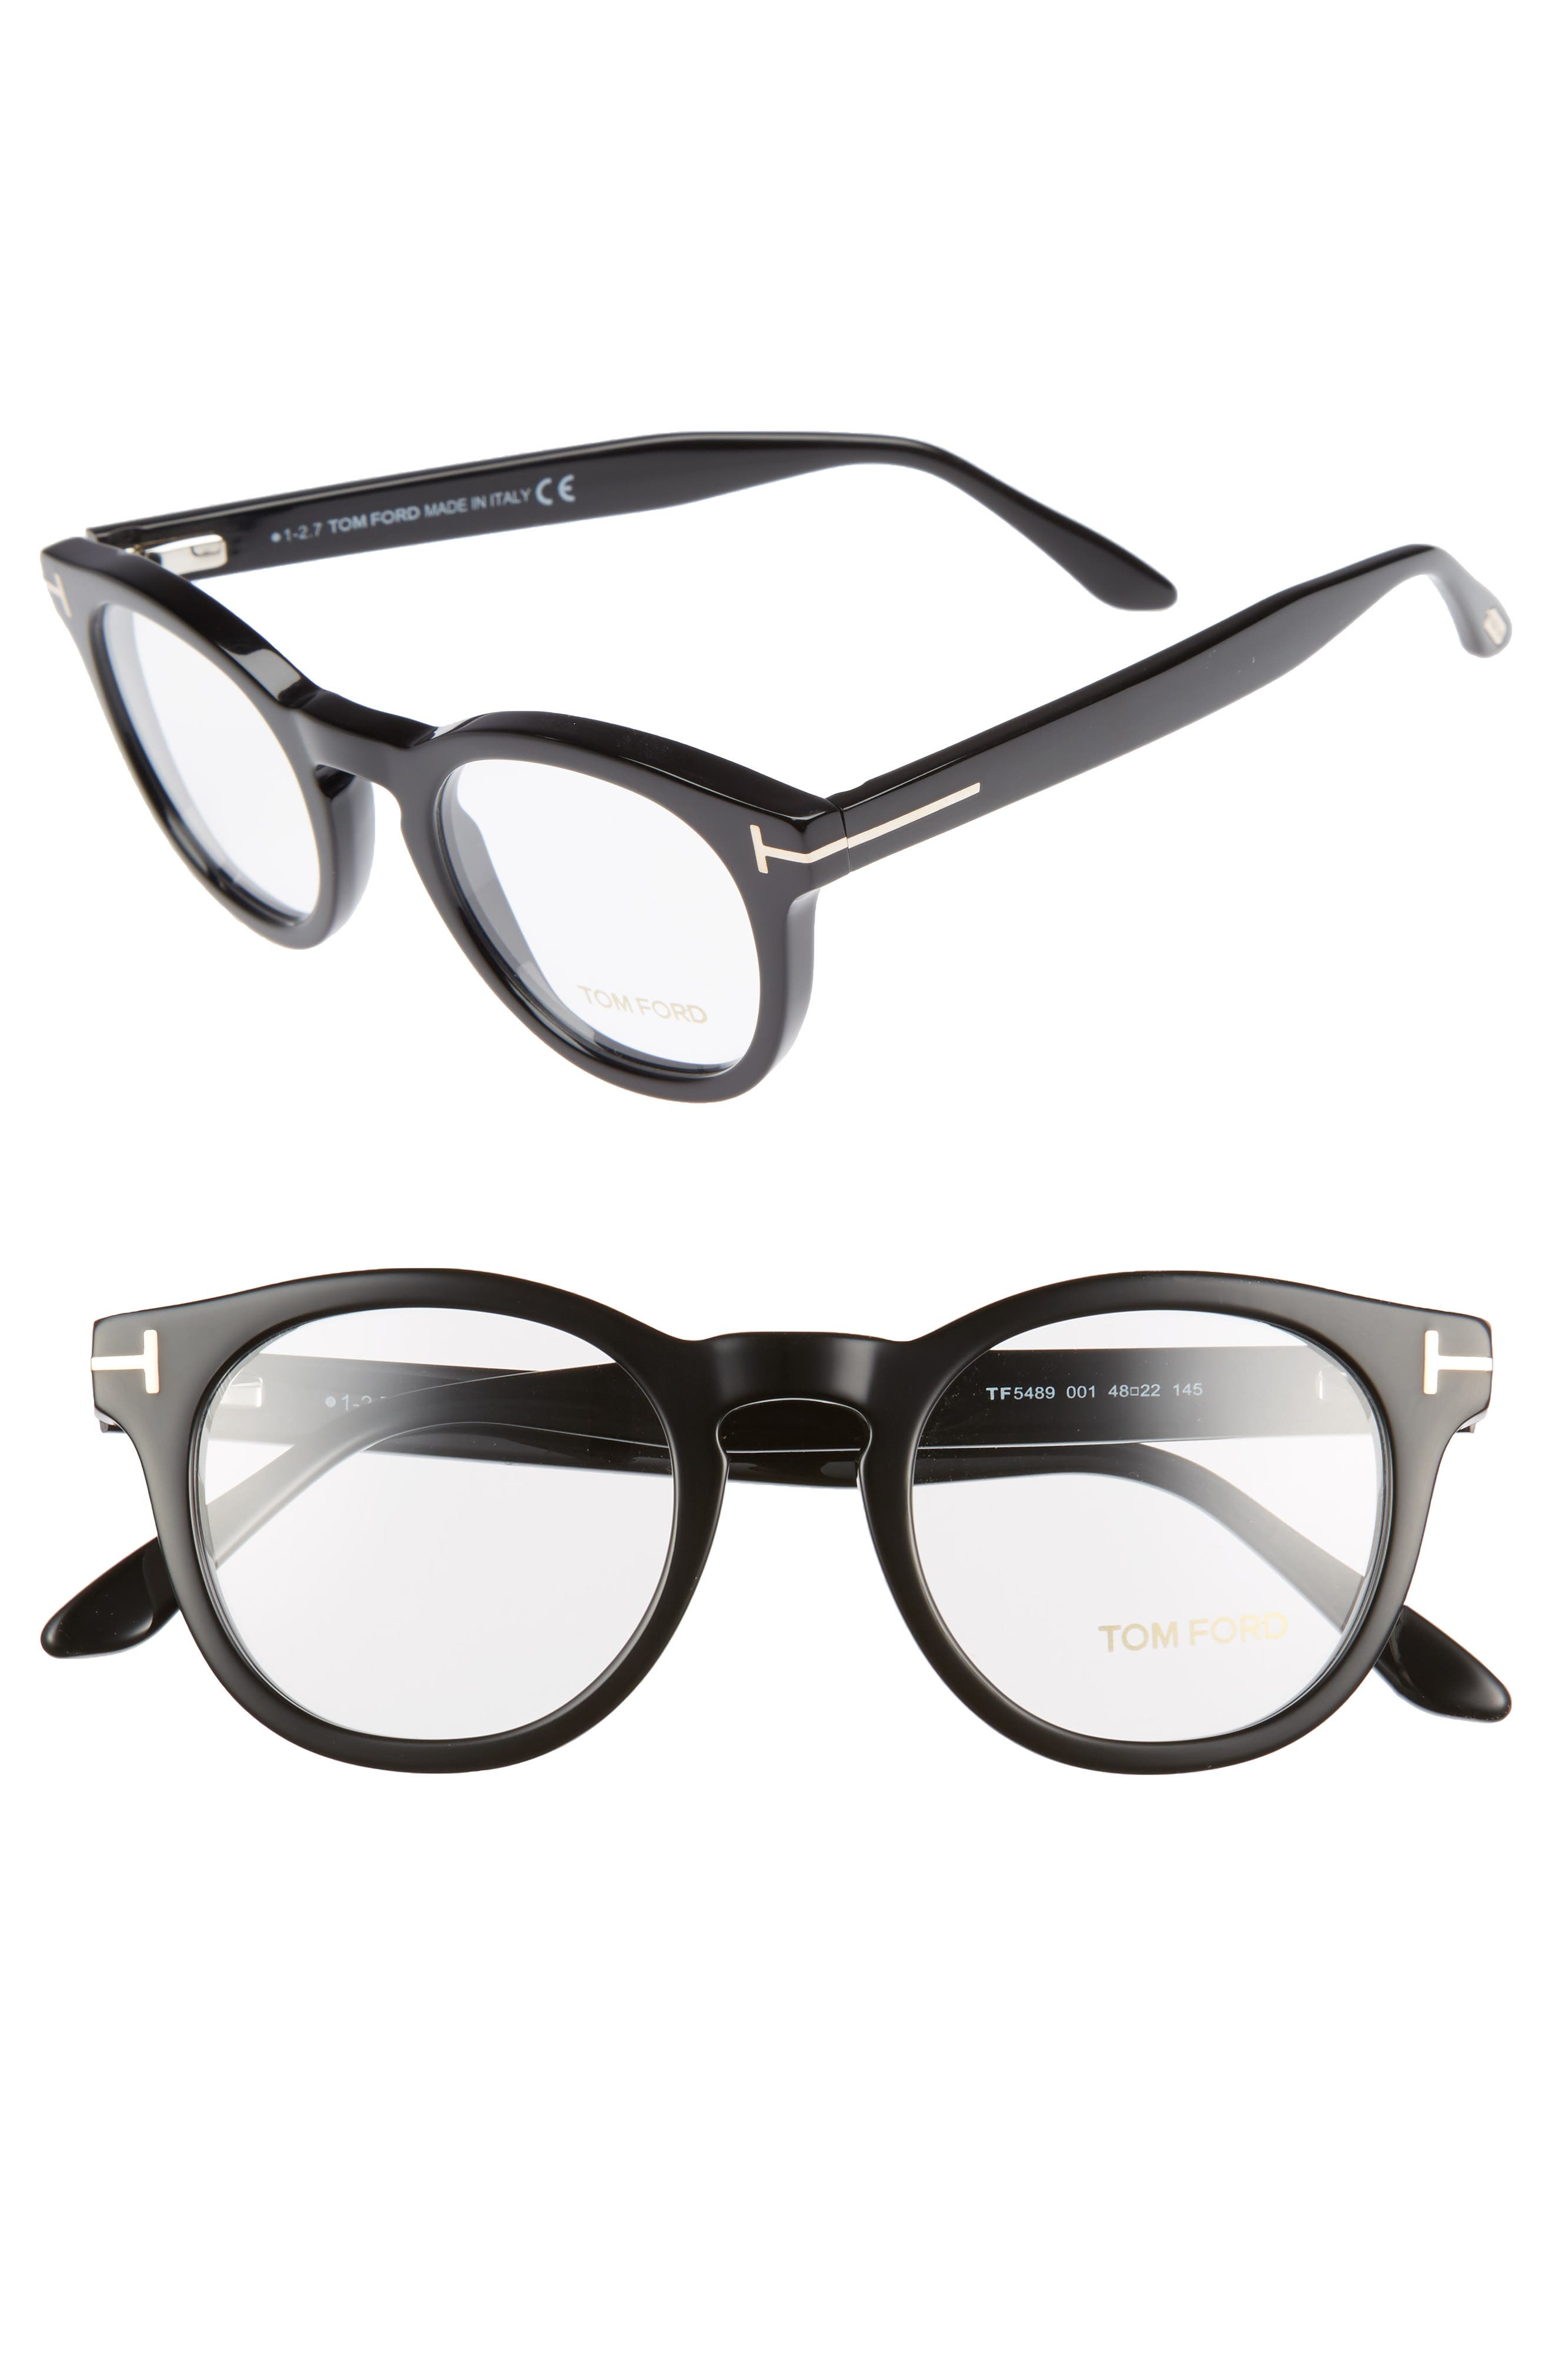 48mm Round Optical Glasses,                             Main thumbnail 1, color,                             001